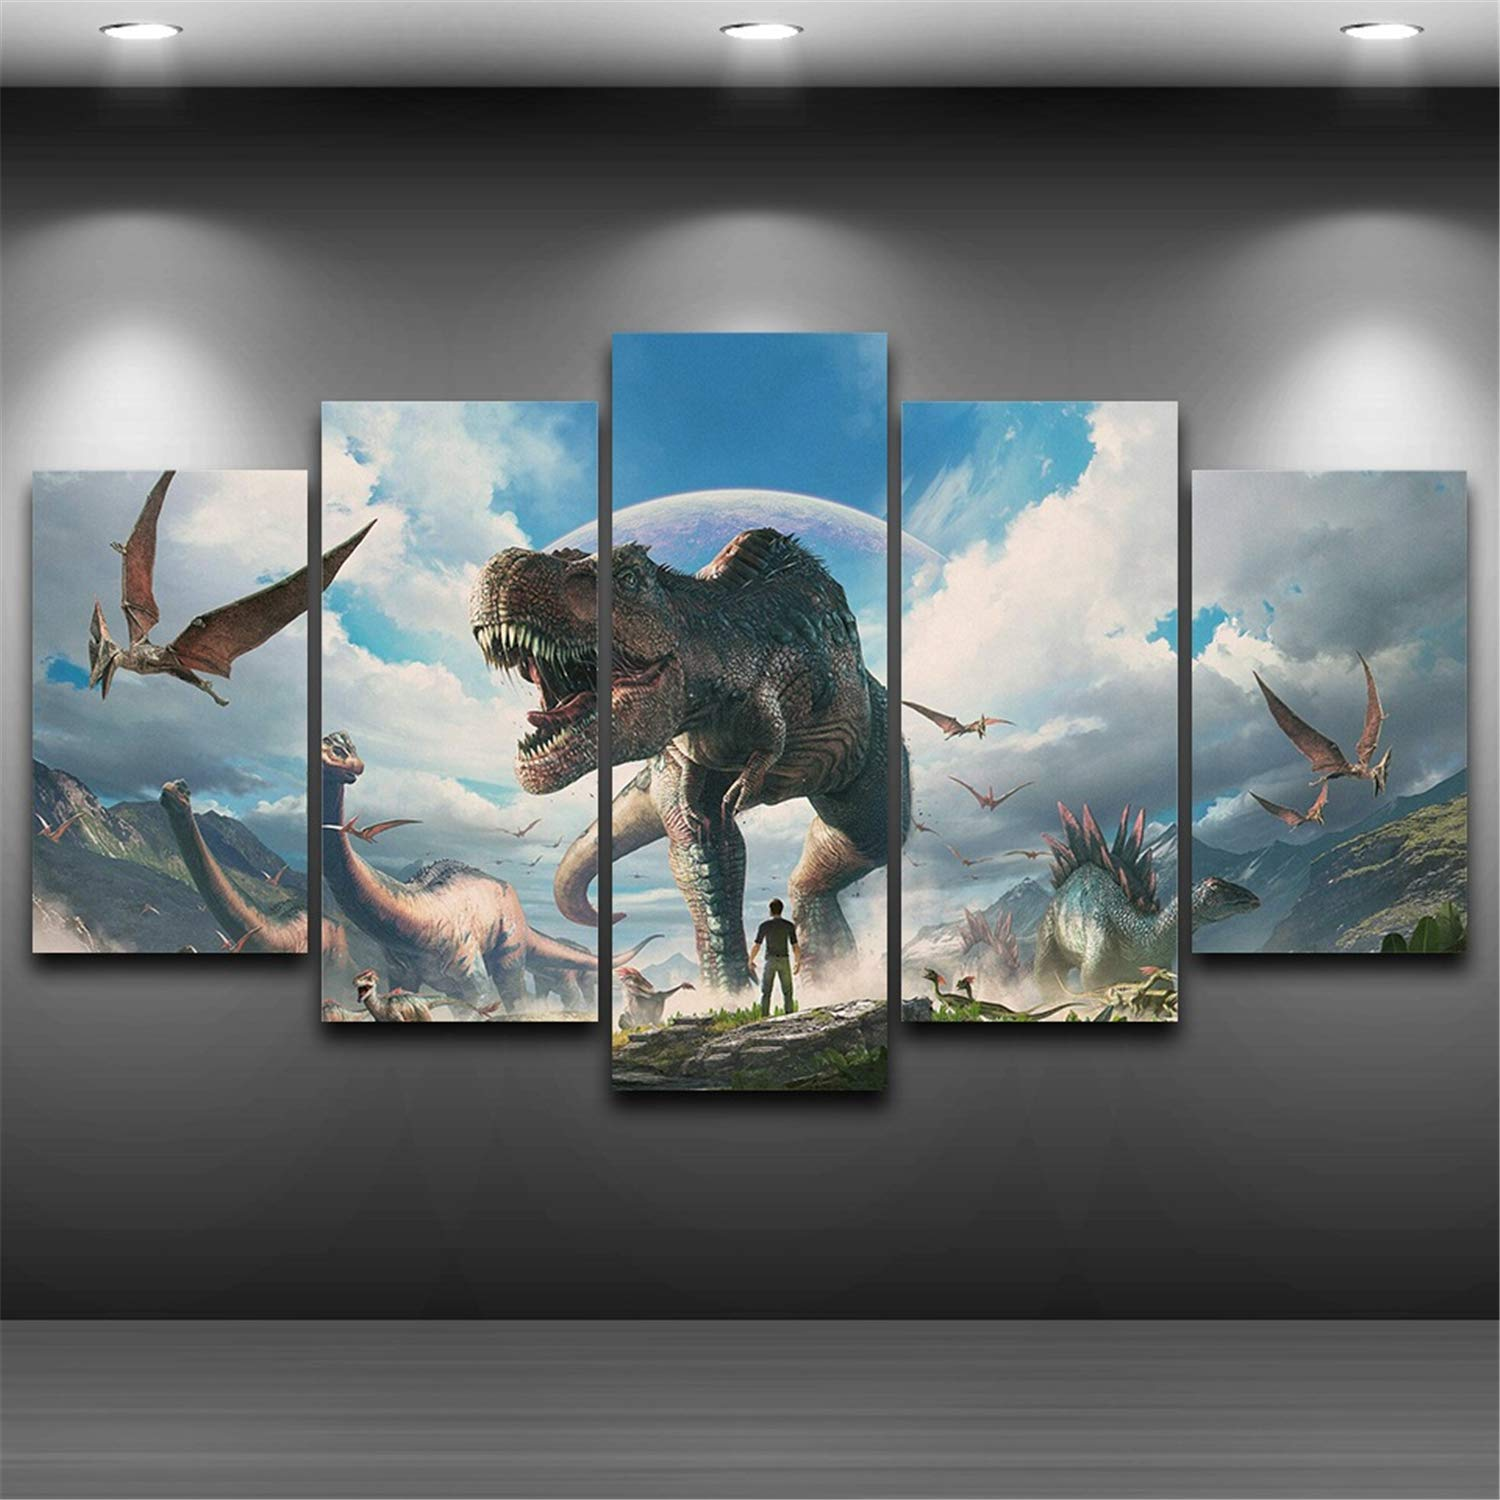 JESC 5 Pieces Jurassic Park Dinosaurs Pictures for Living Room HD Prints Animal Canvas Painting Home Decor Wall Art Framework